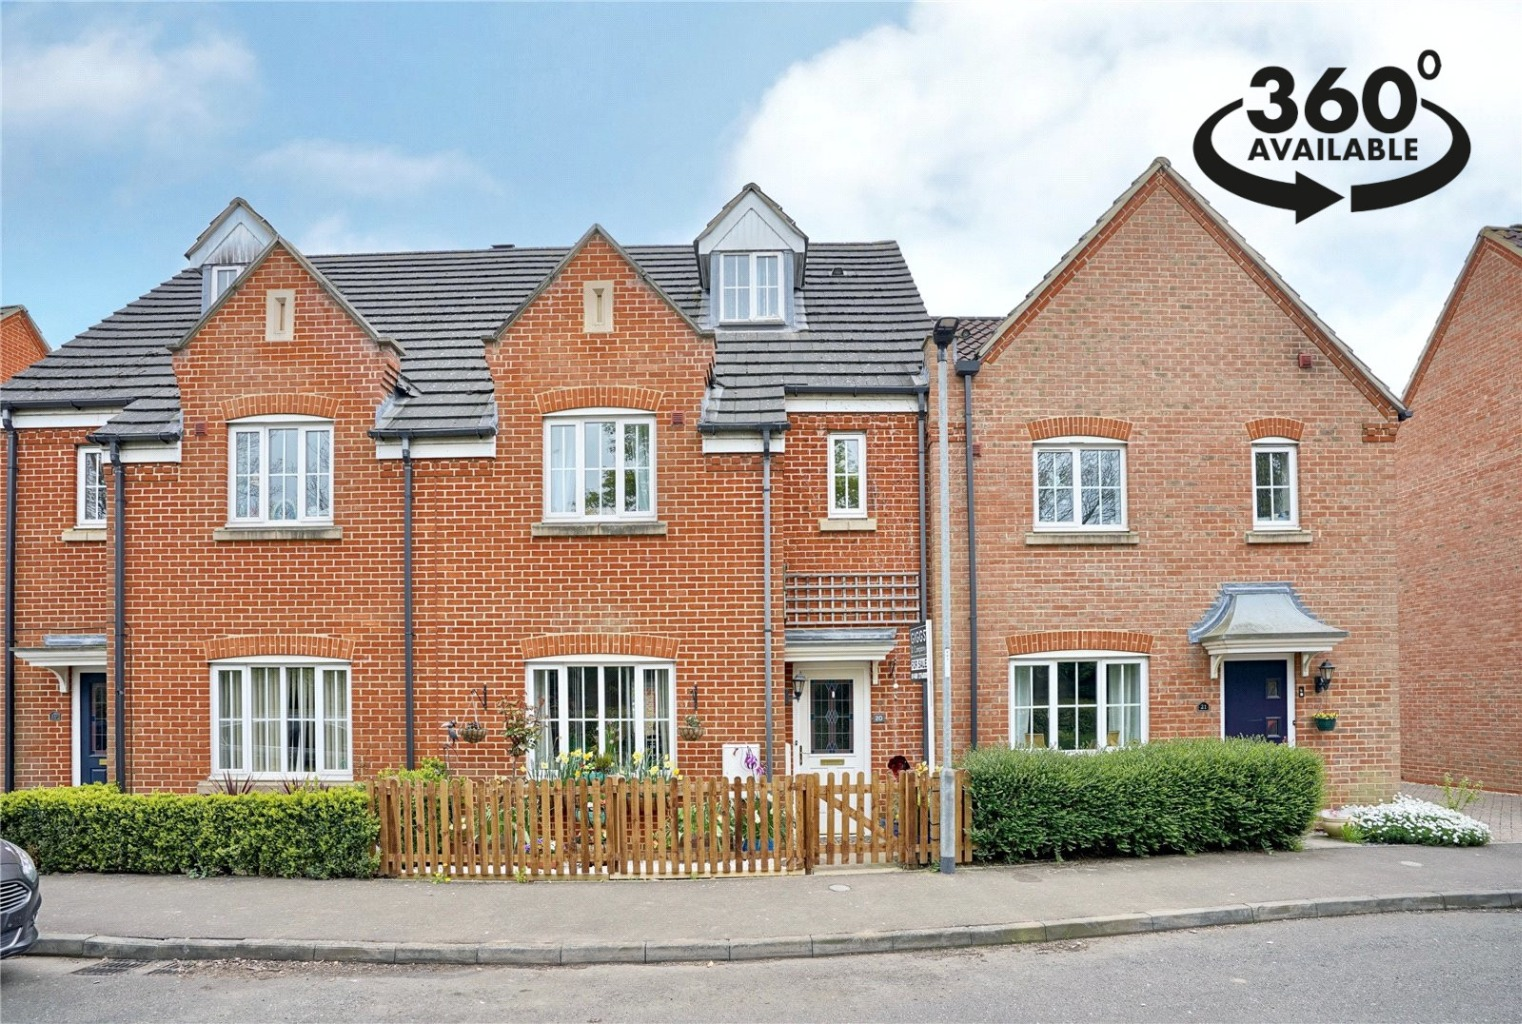 4 bed town house for sale in Beaufort Drive, St. Neots, PE19